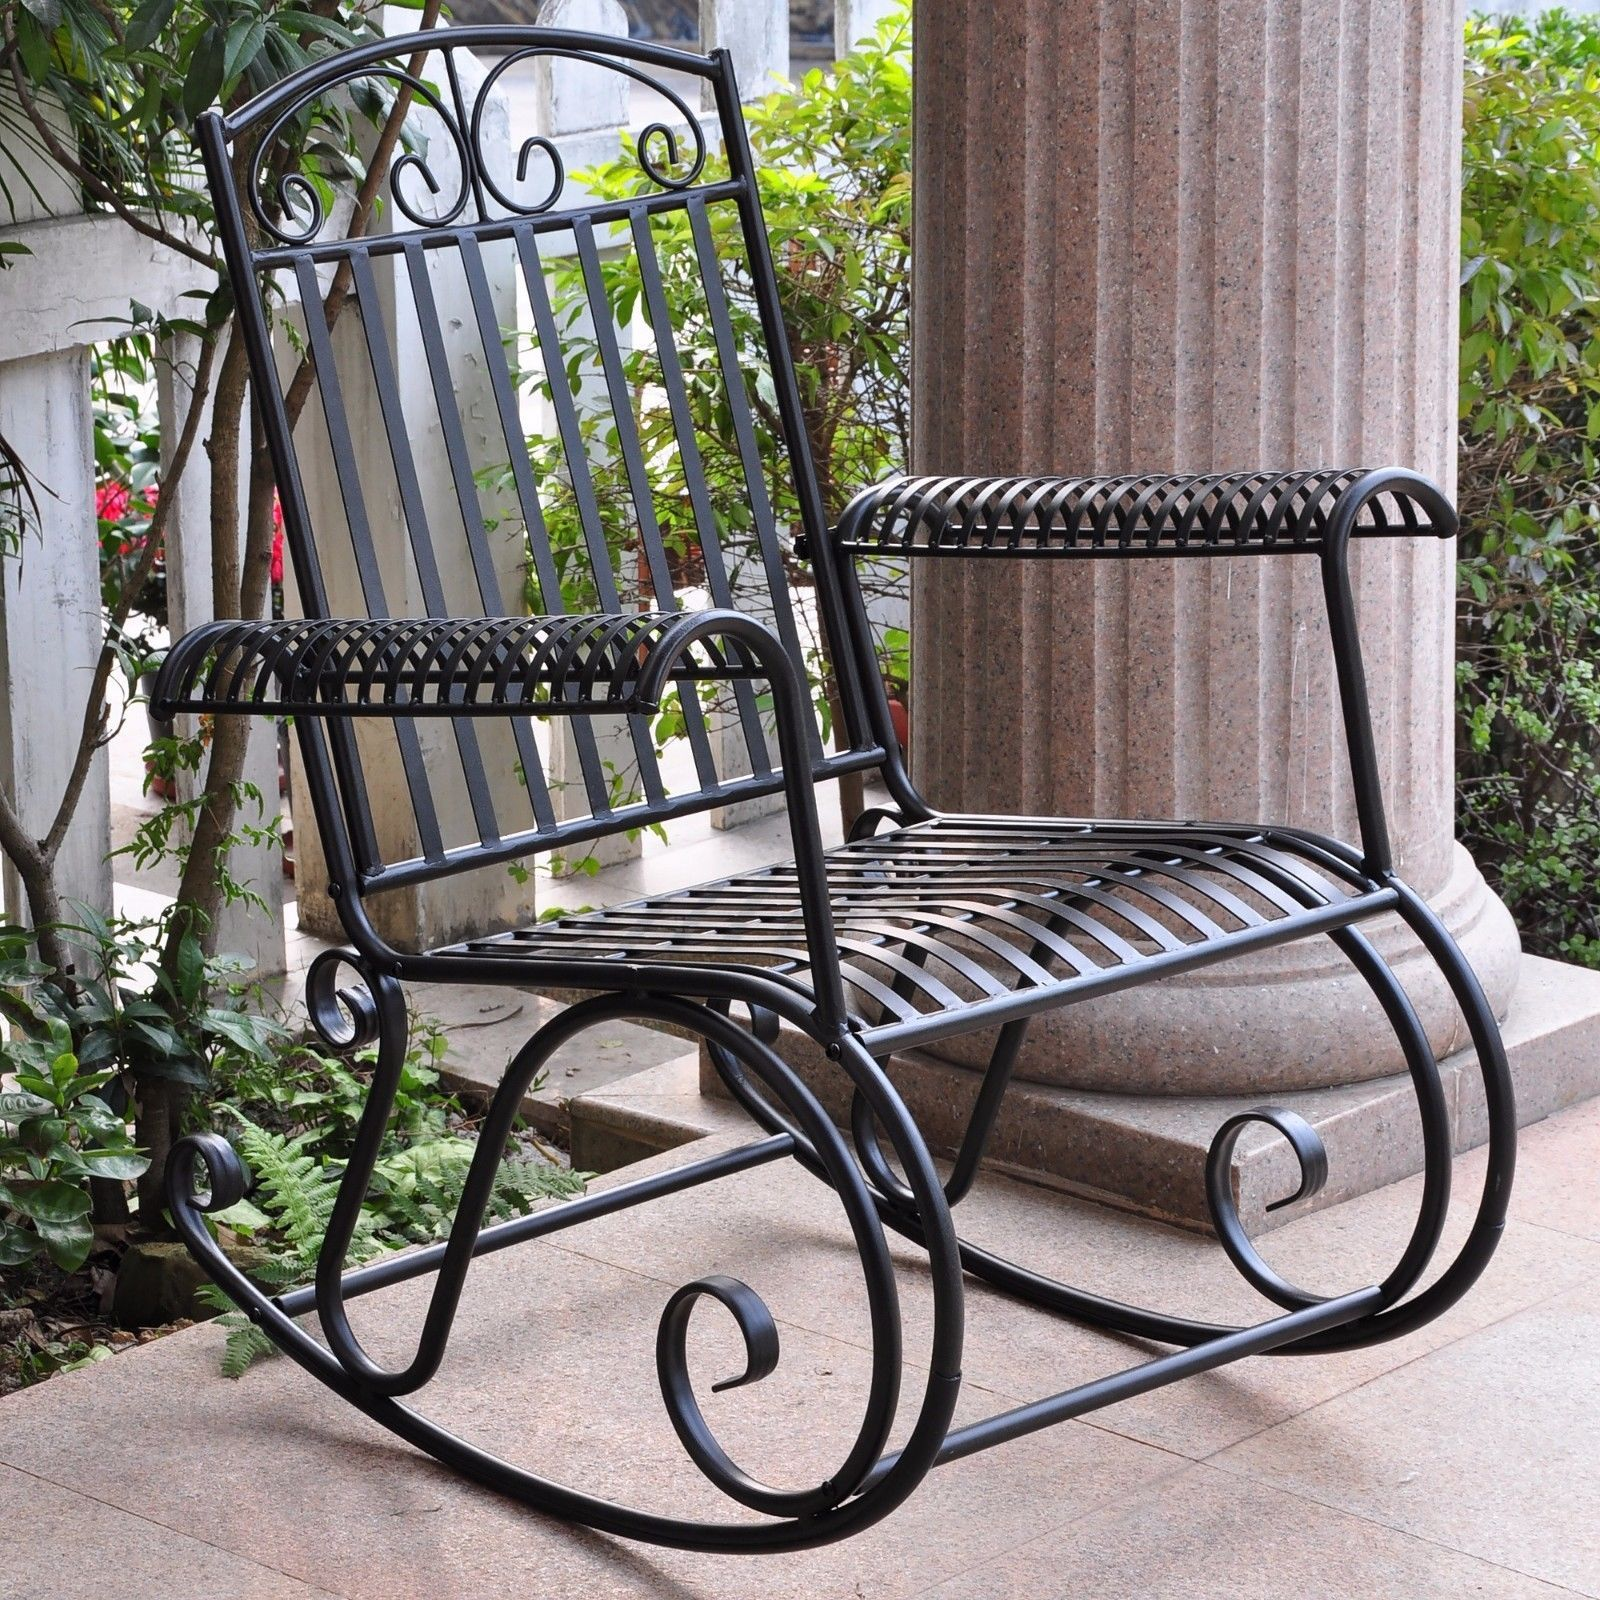 Metal iron outdoor rocking chair retro and 50 similar items Vintage metal garden furniture